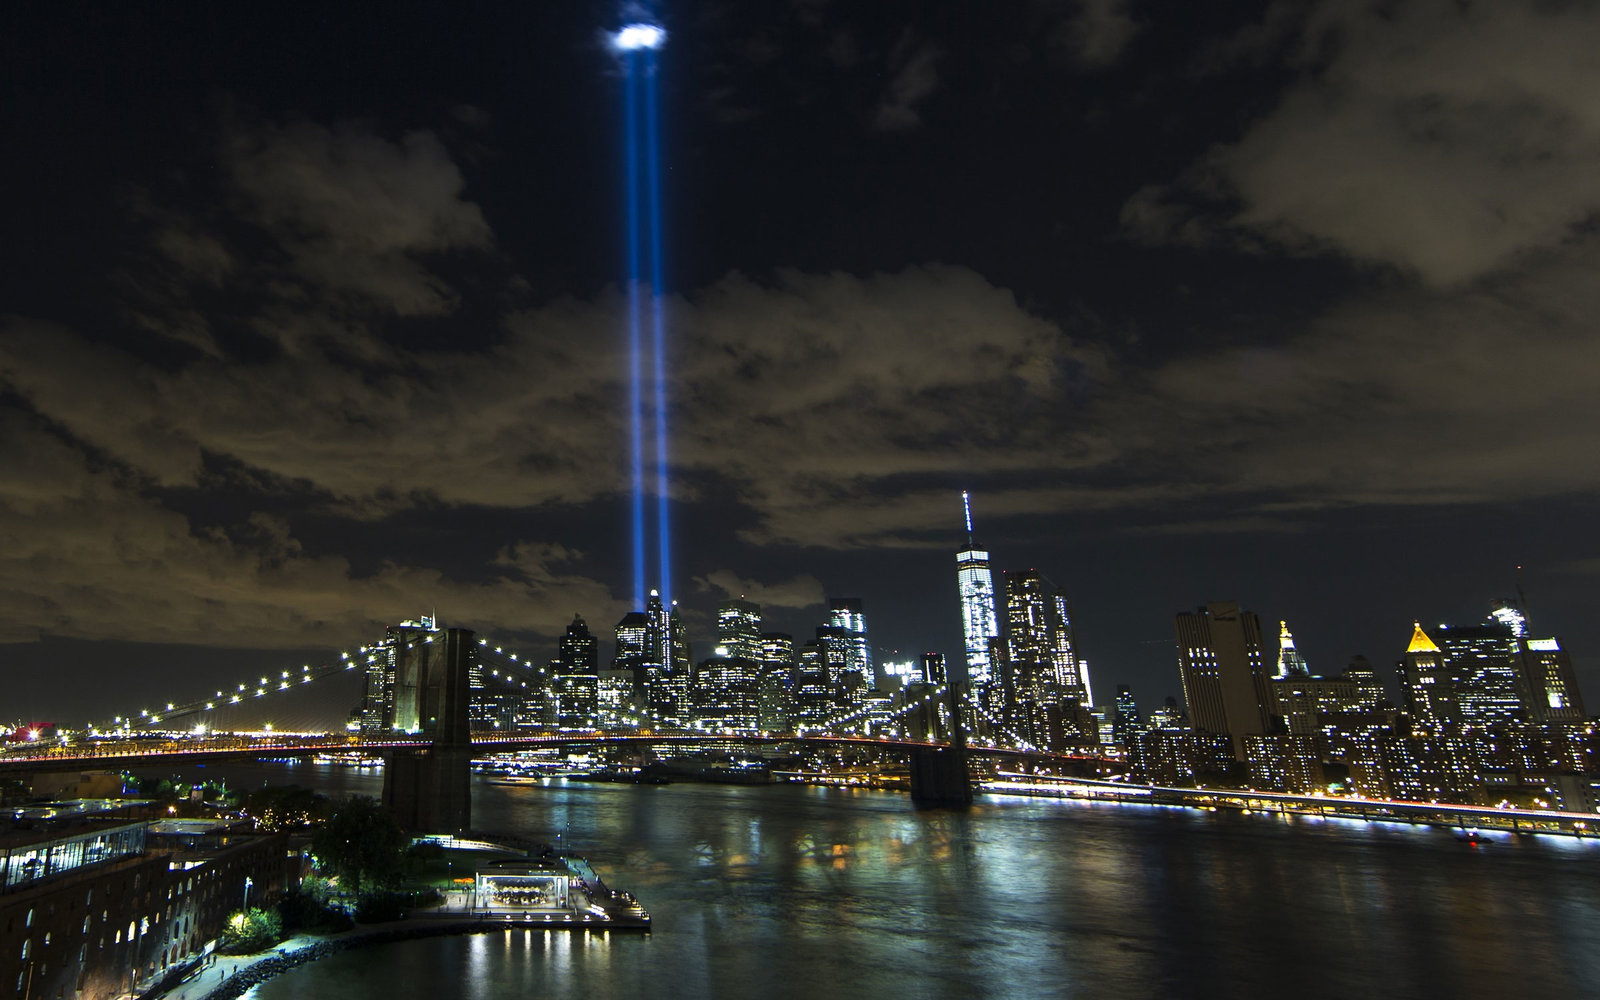 US marks 15th anniversary of 9/11 attacks